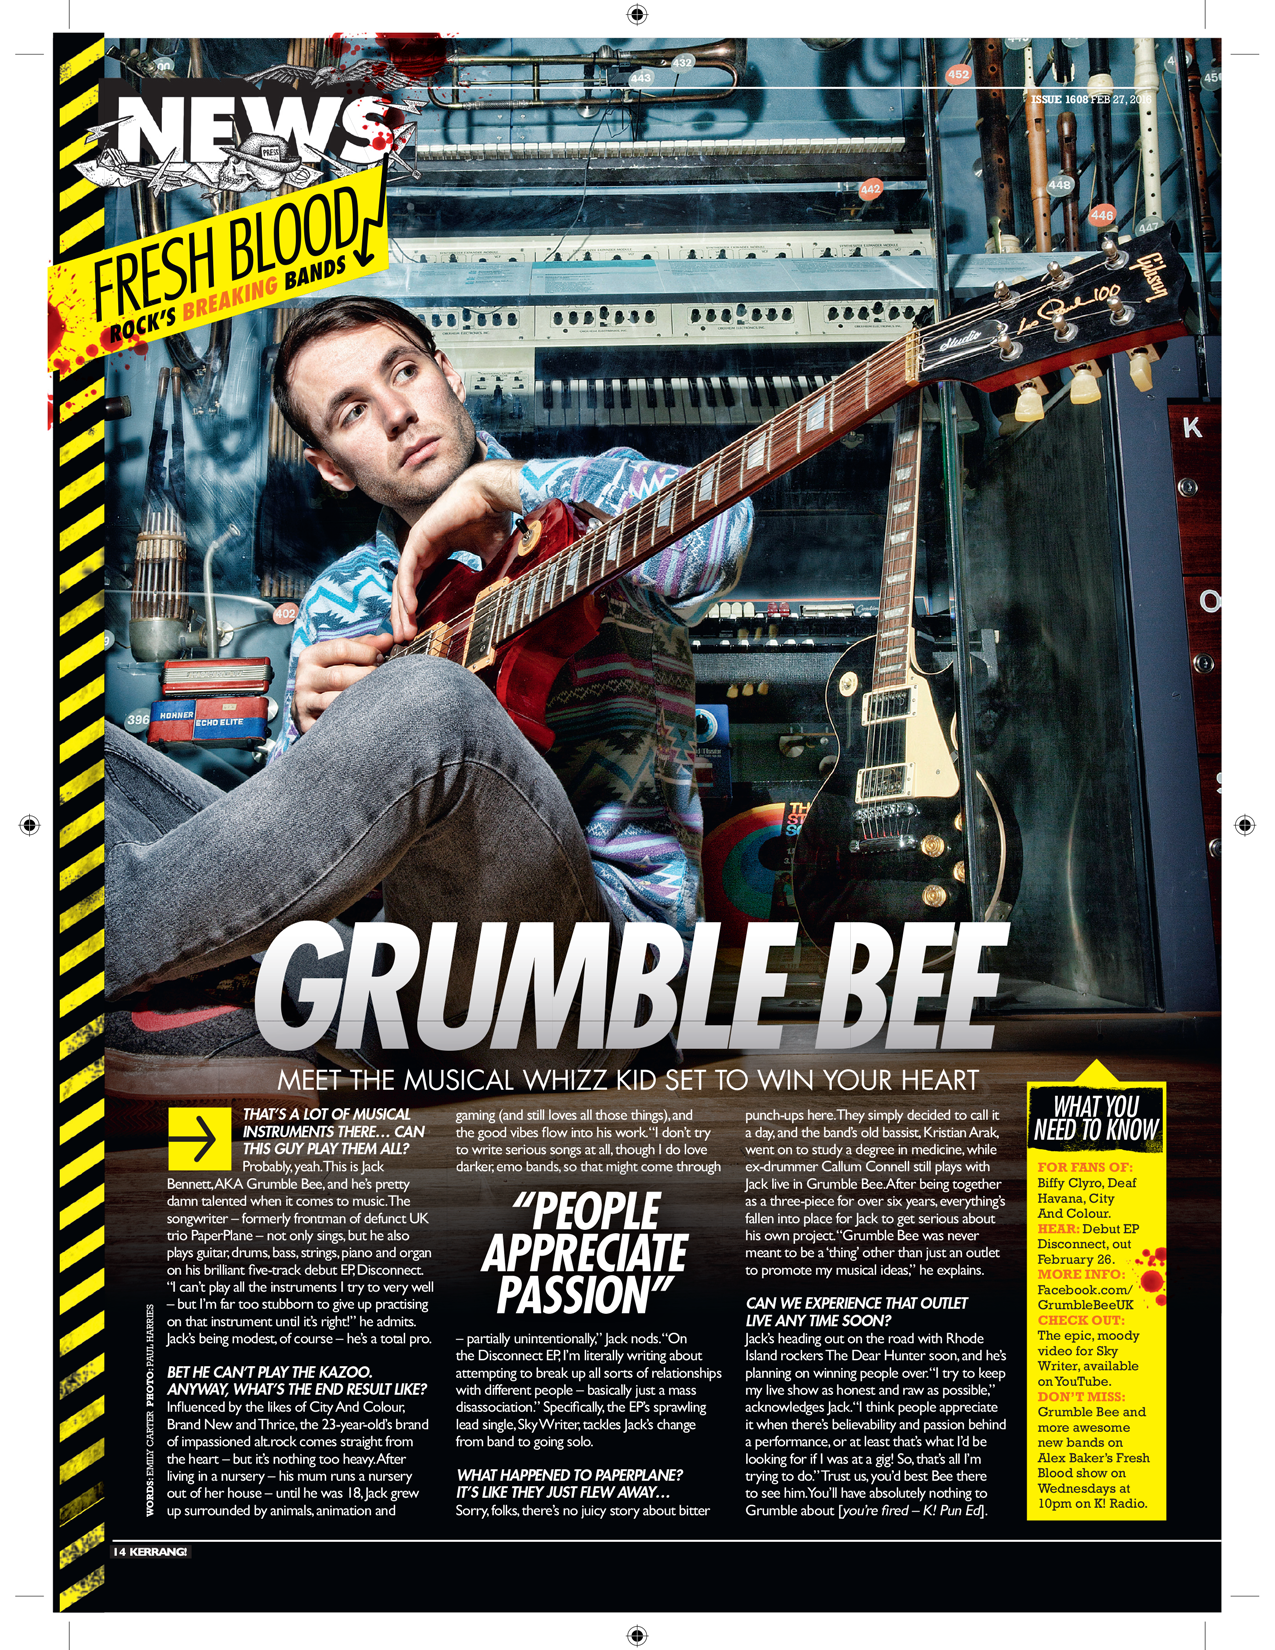 Fresh-Blood-Kerrang!